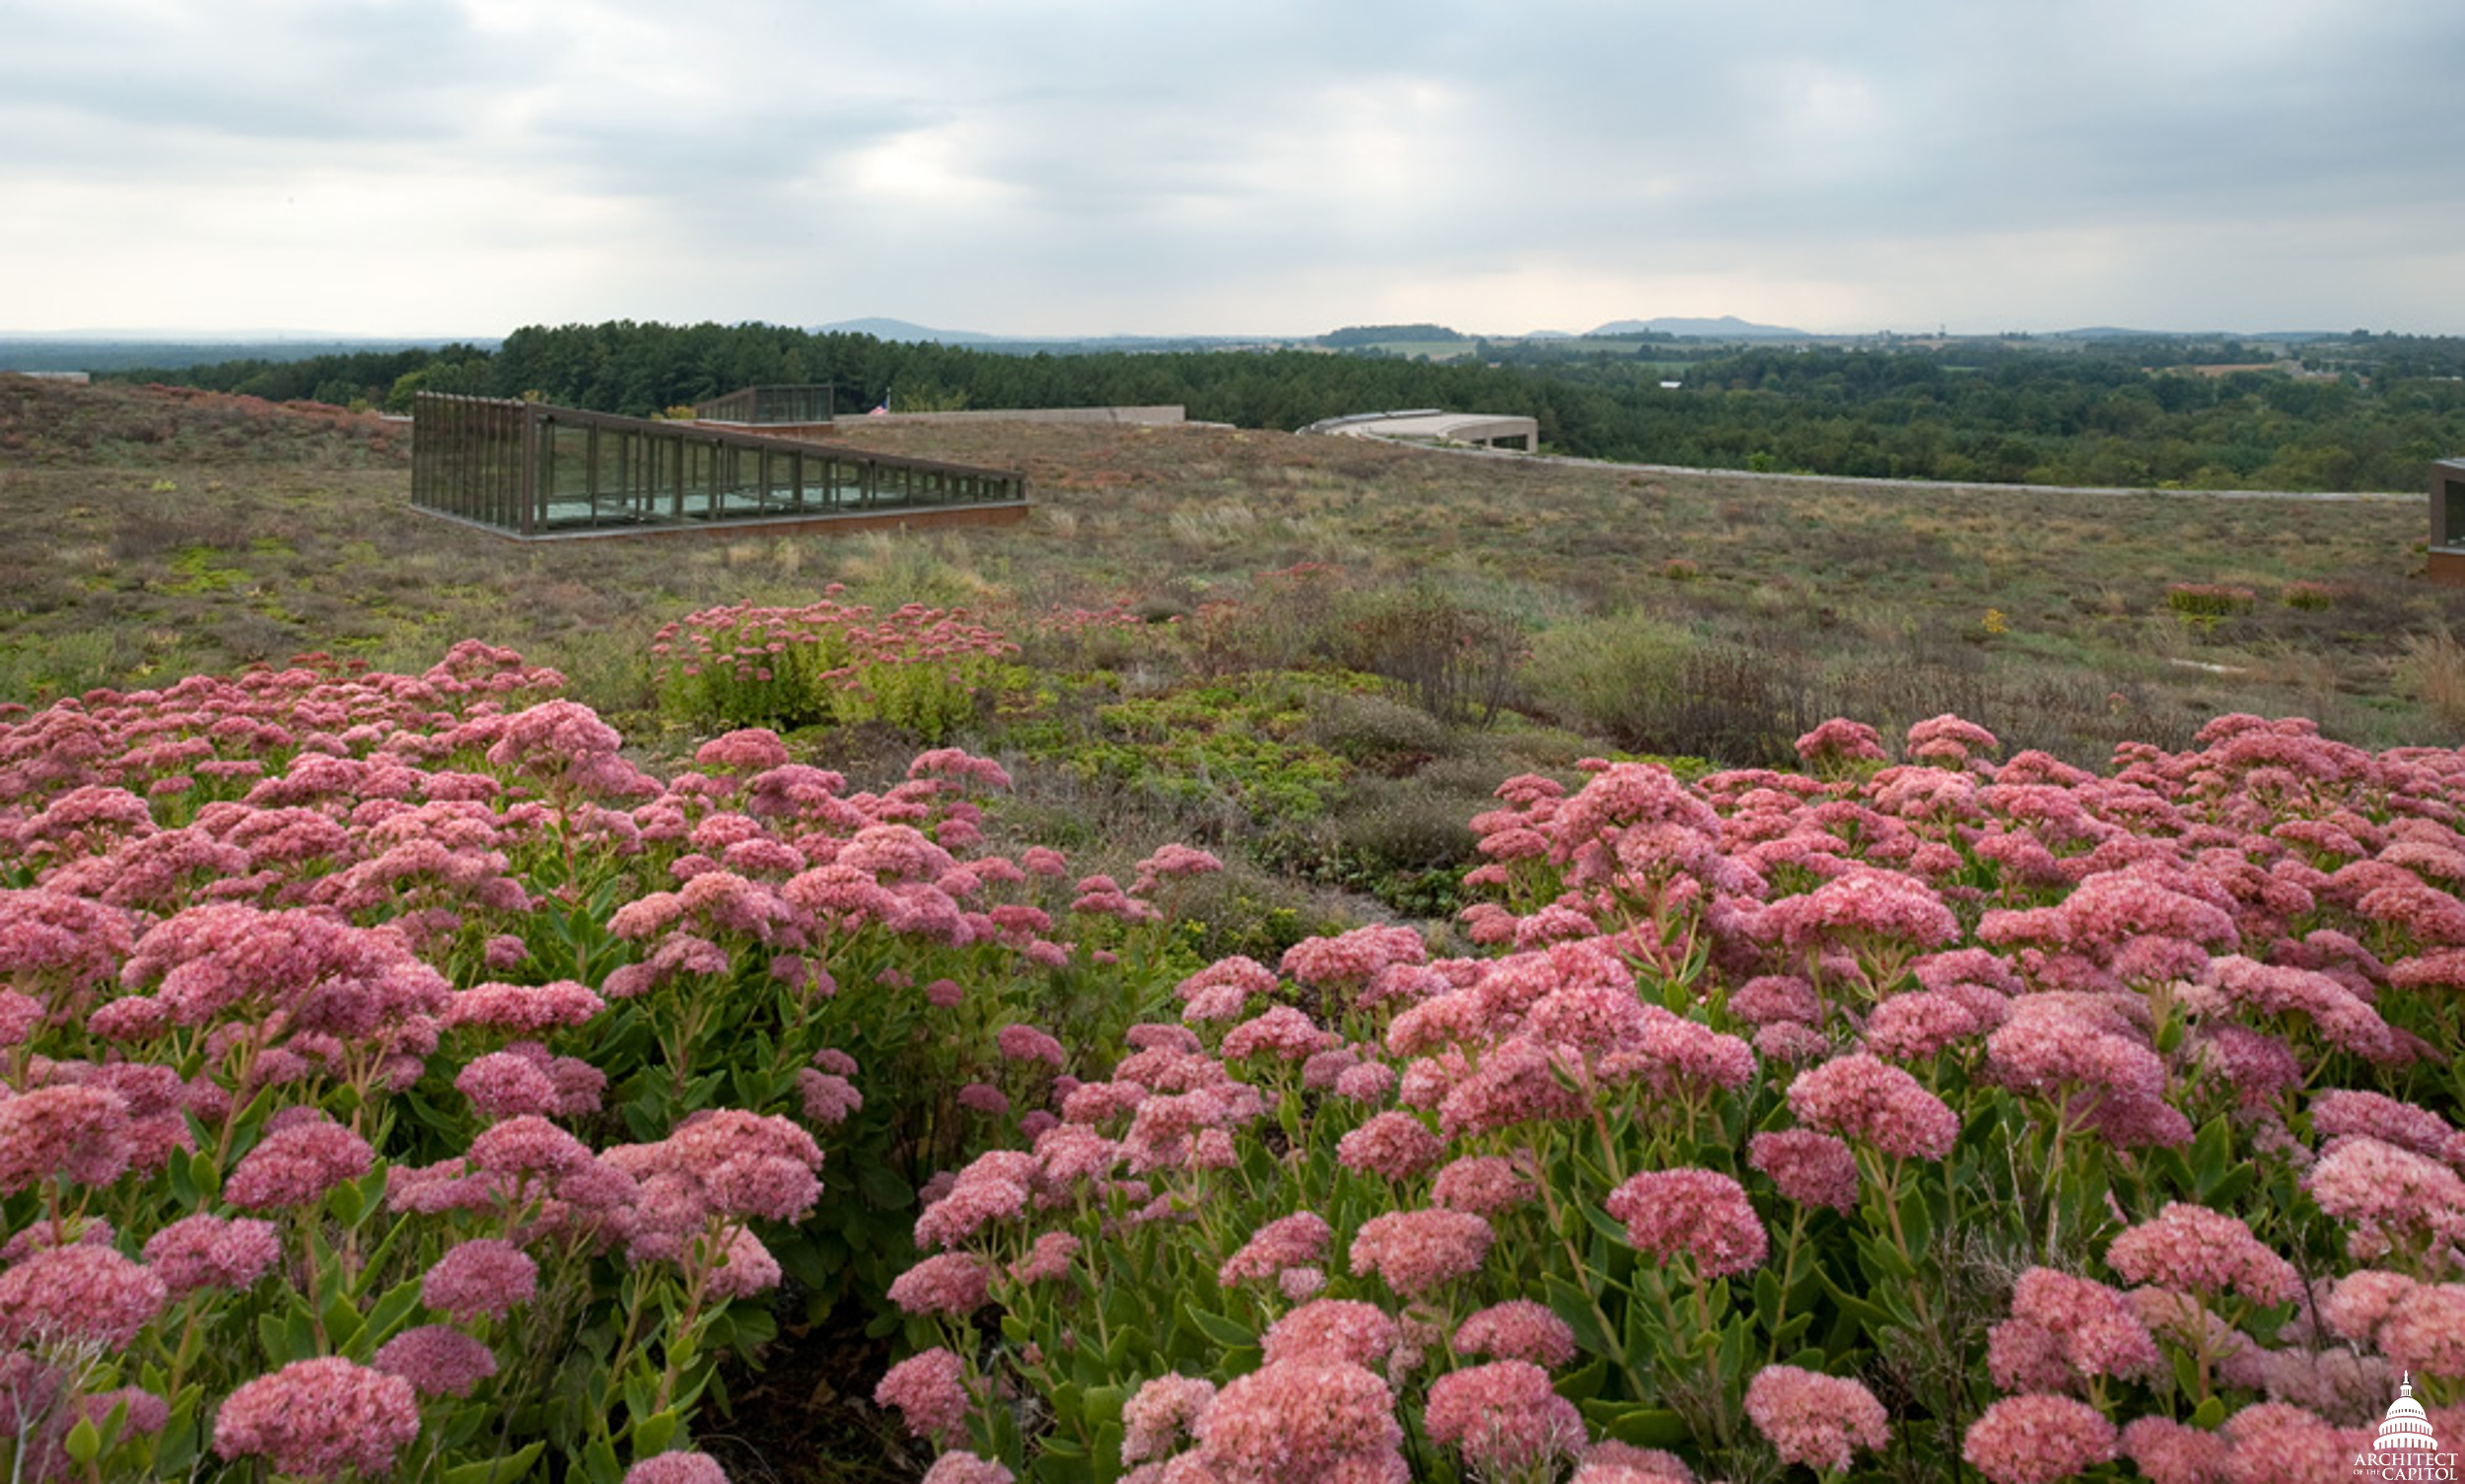 Green Roof at the Packard Campus for Audio Visual Conservation